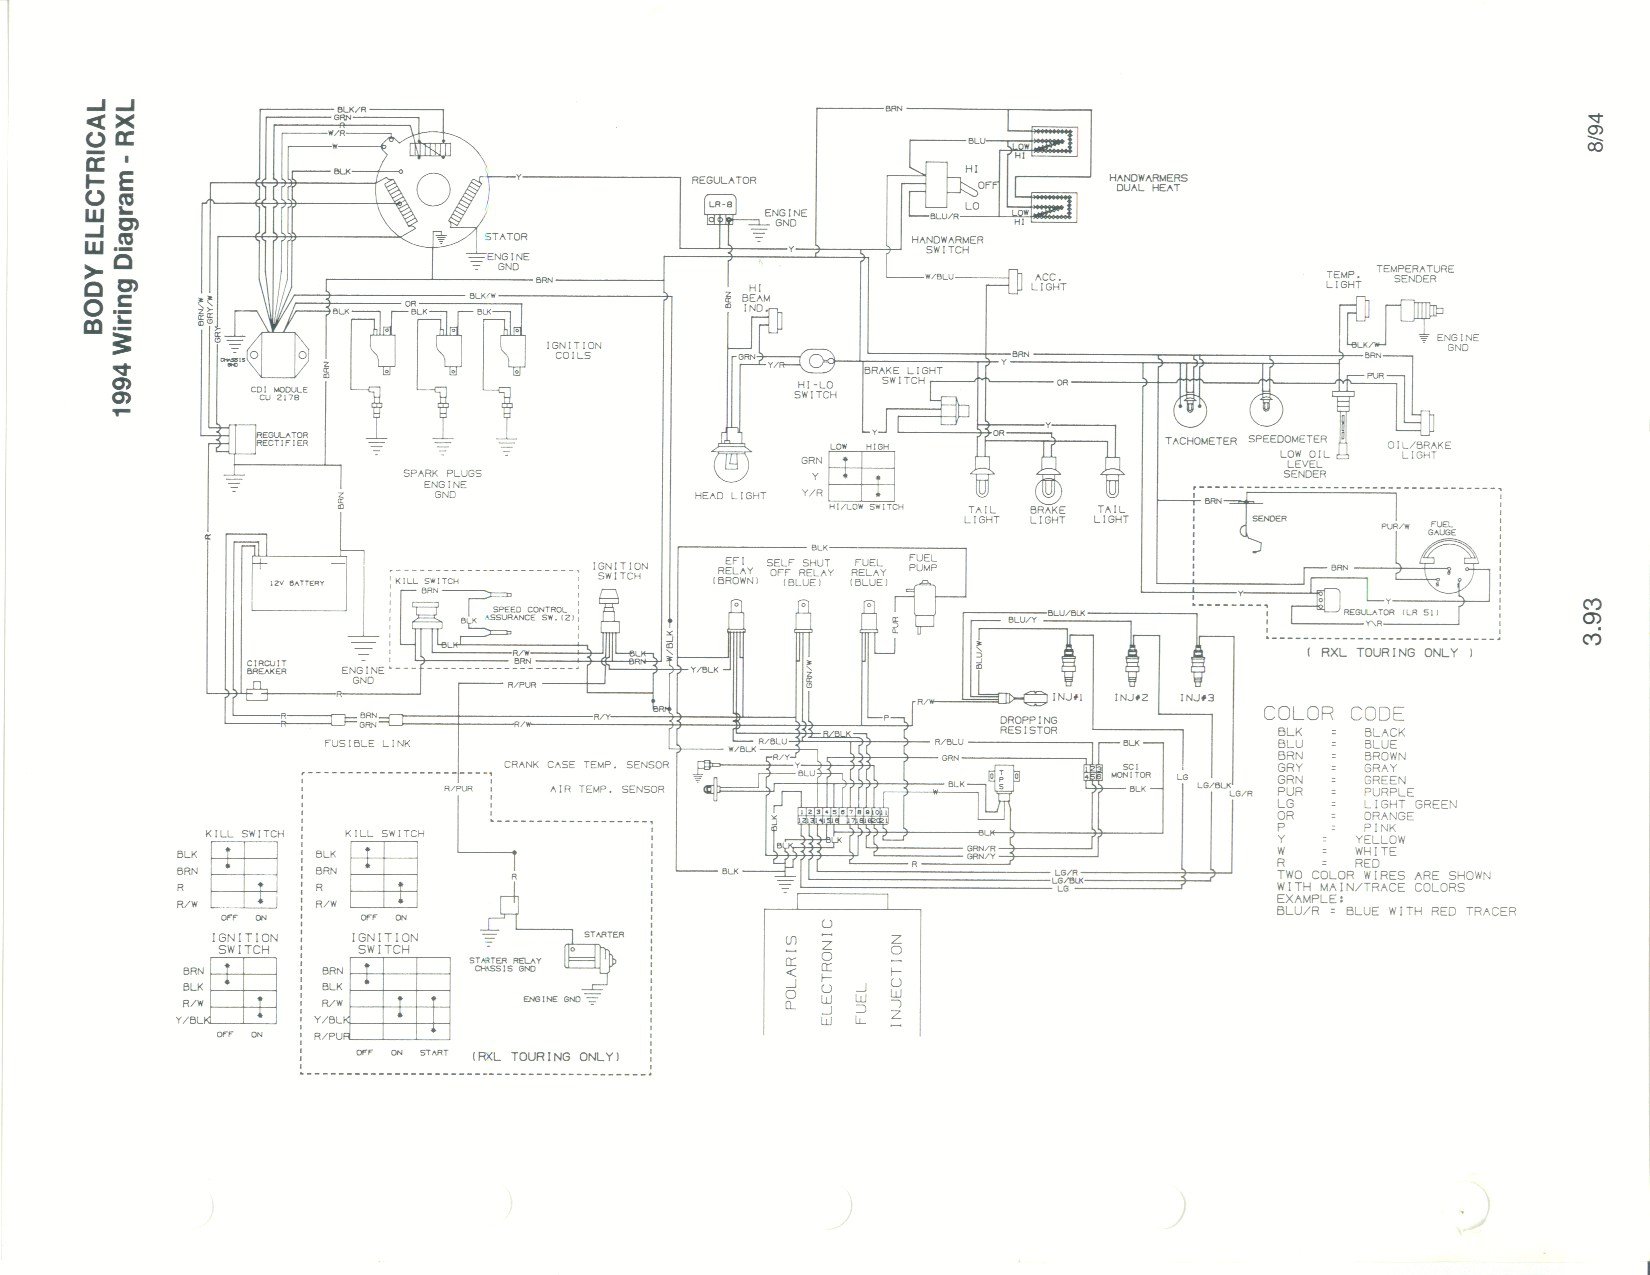 hight resolution of 1991 polaris wiring diagram wiring diagram 1991 polaris wiring diagram